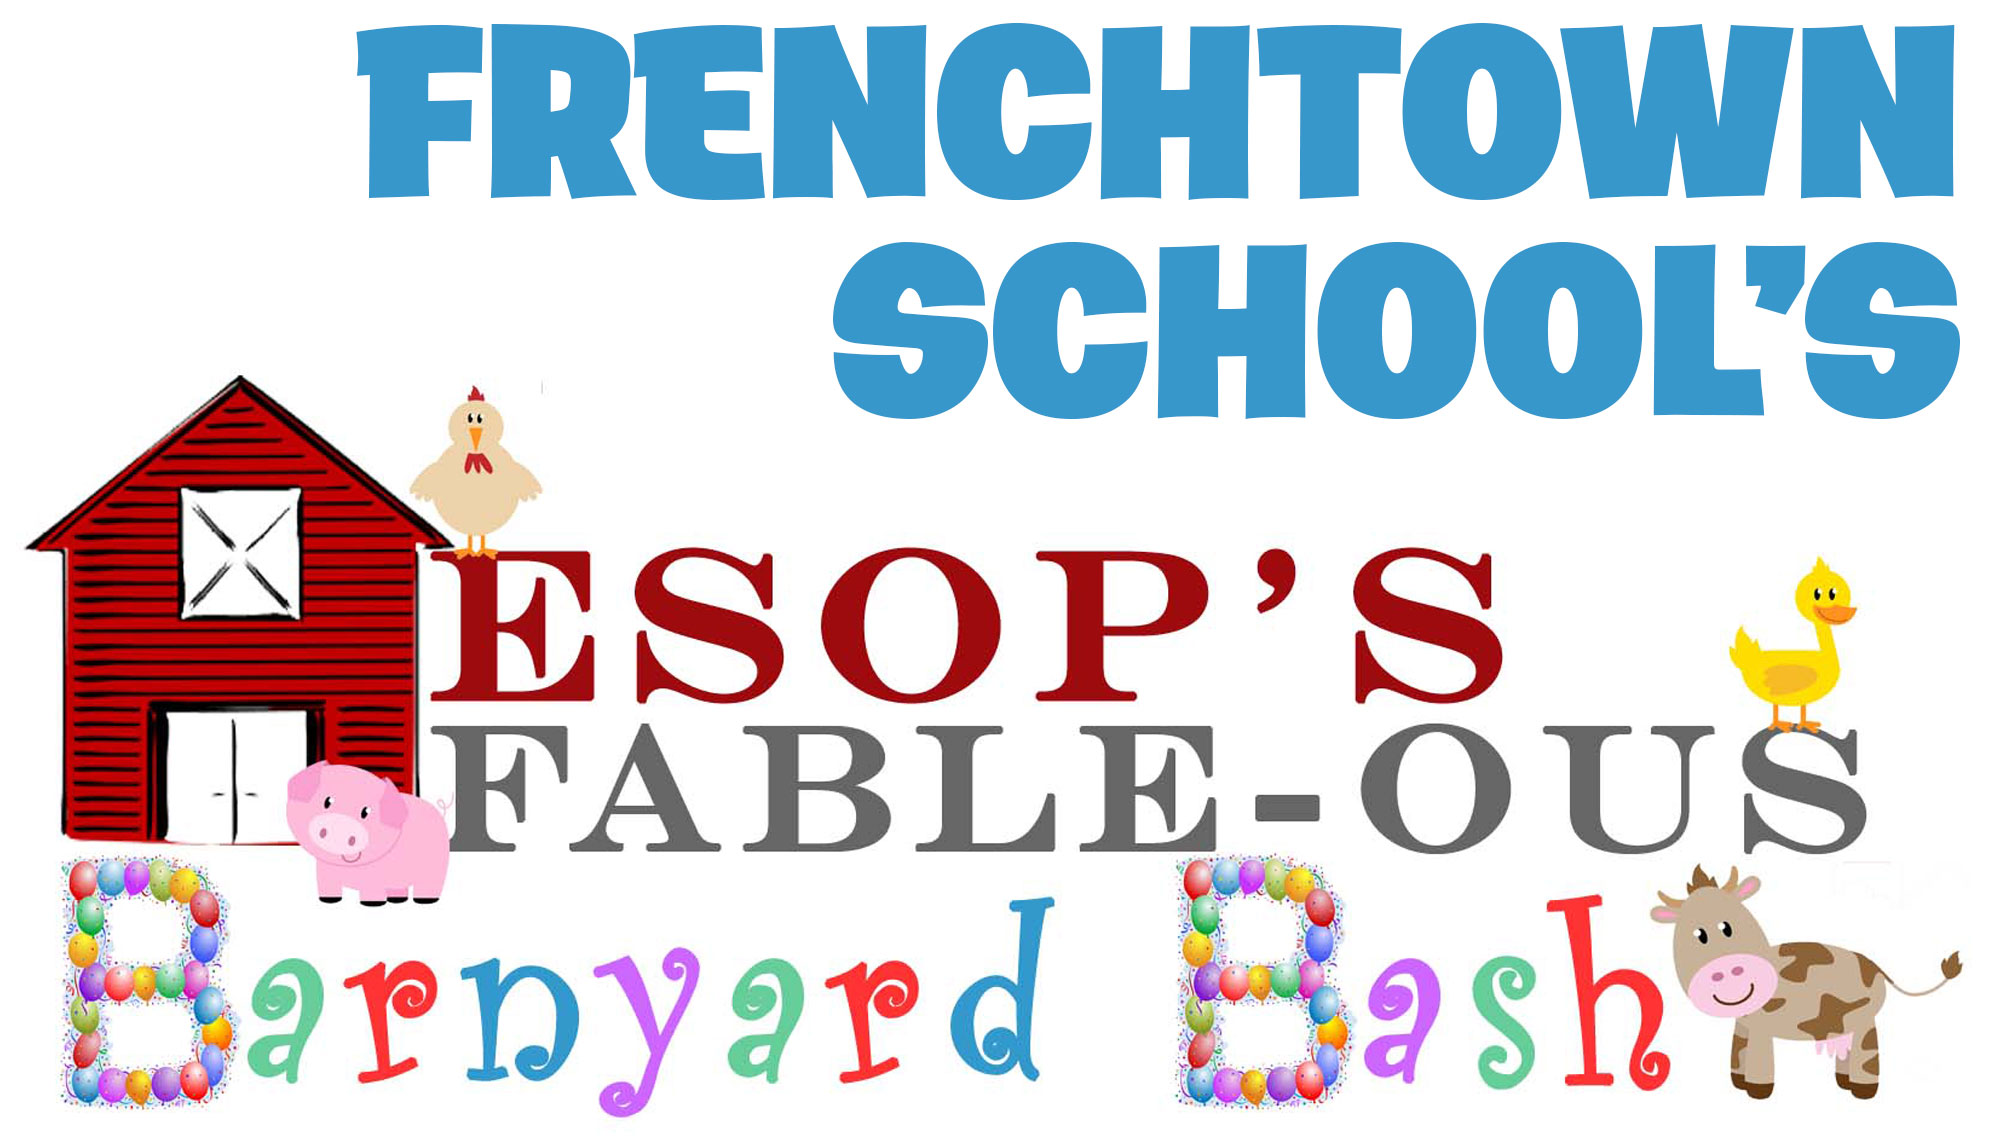 AESOP'S FABLE-OUS BARNYARD BASH  <h6>Presented by Frenchtown School  </h6><h5>April 7 & 8  </h5>